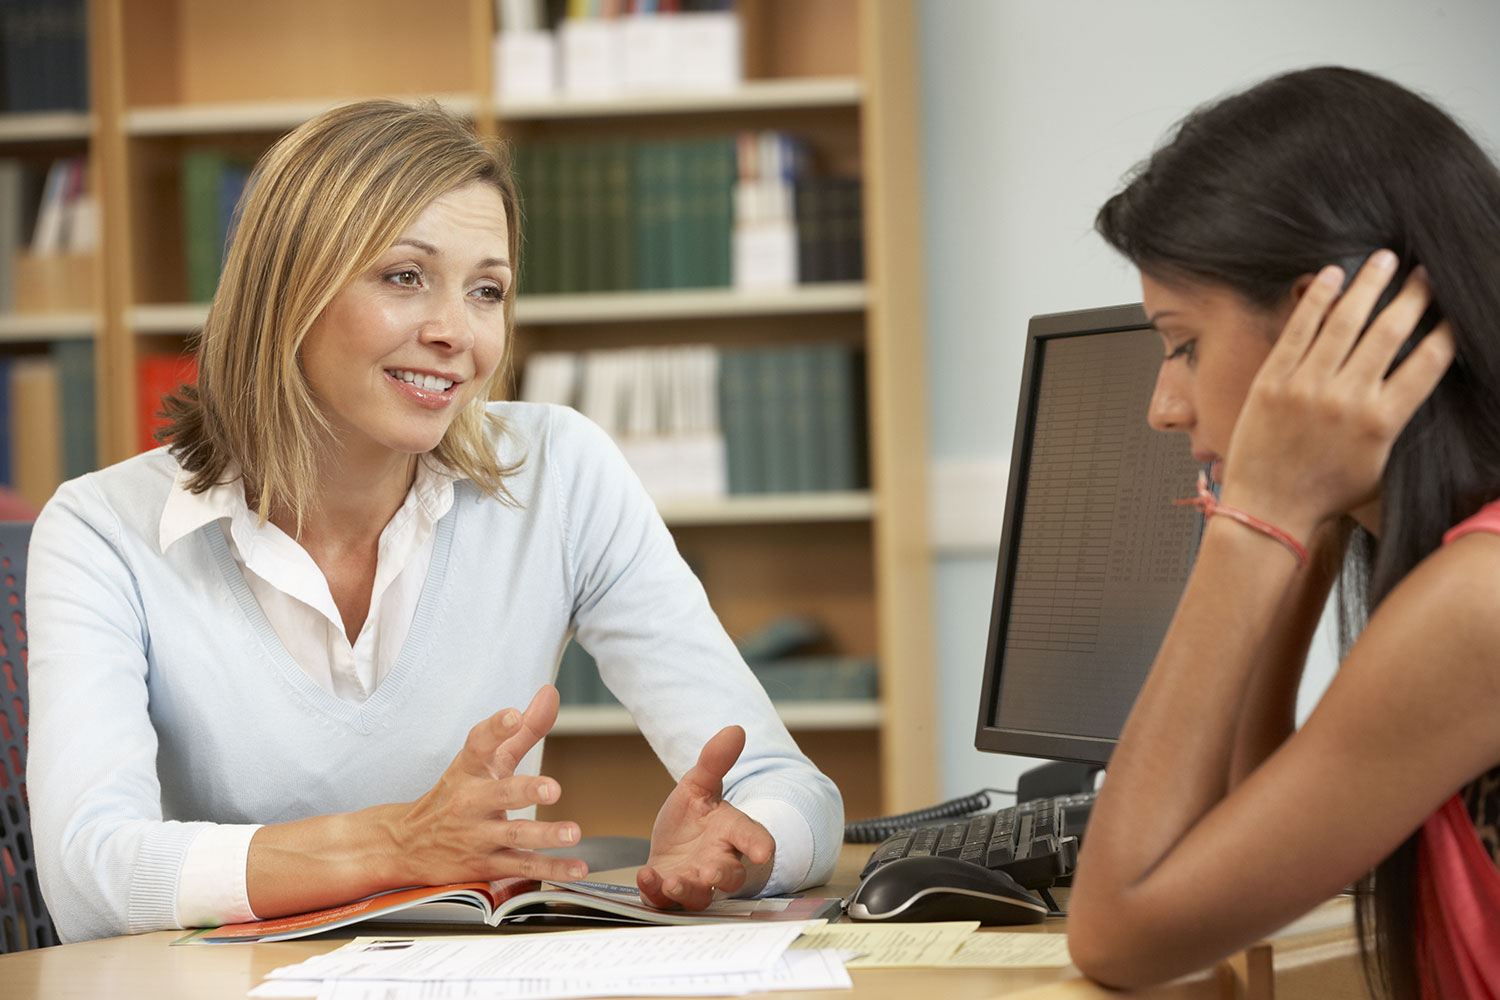 counselling at university